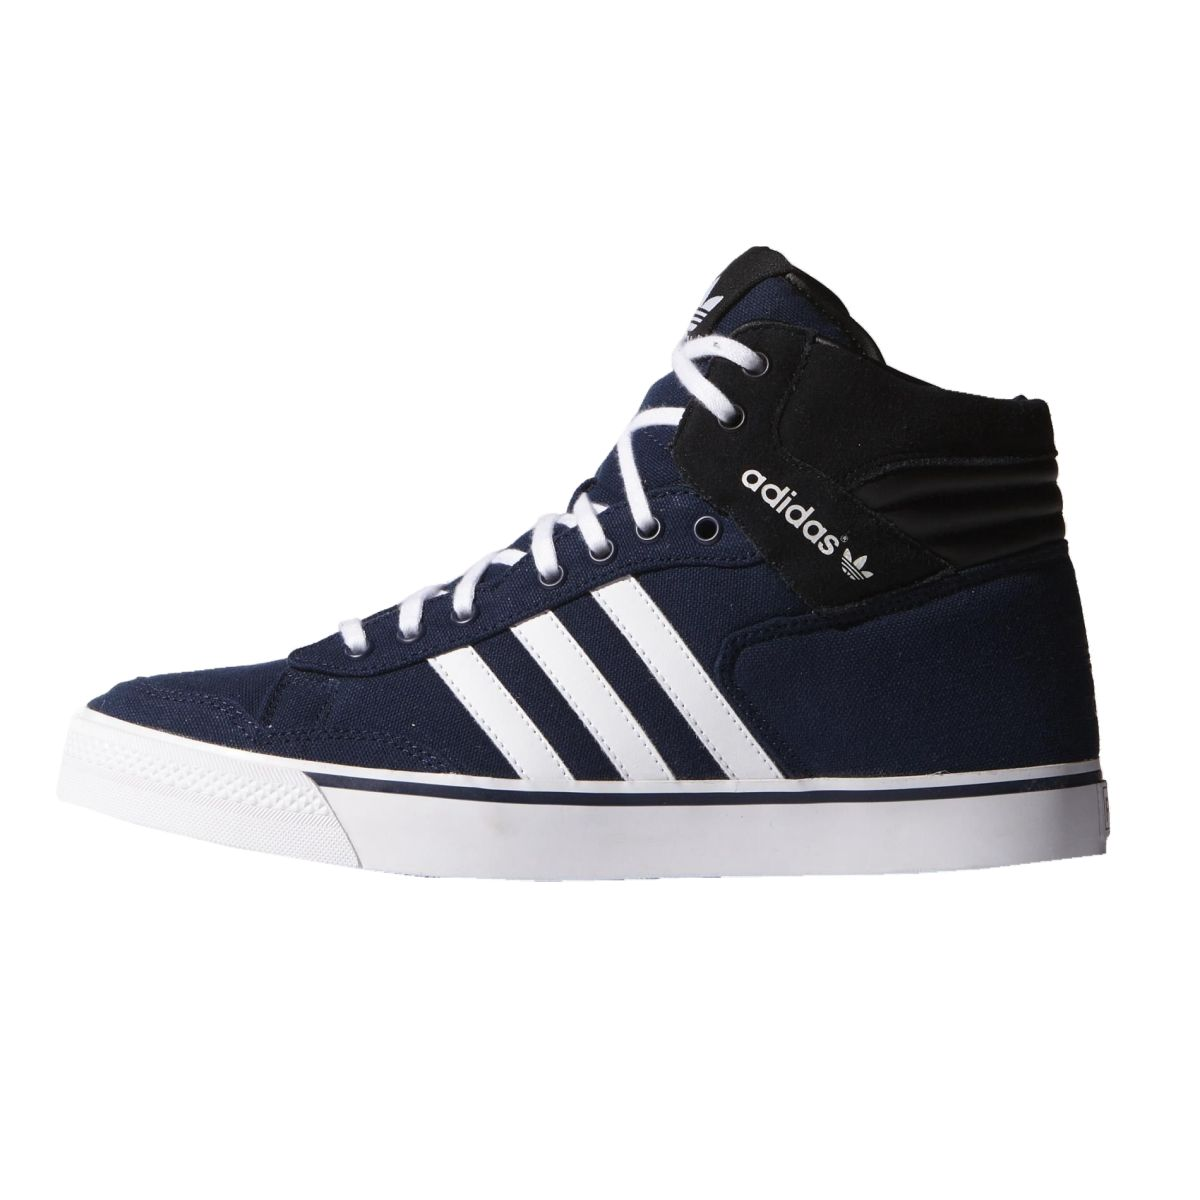 adidas originals pro conference hi men 39 s high top sneaker various colors ebay. Black Bedroom Furniture Sets. Home Design Ideas